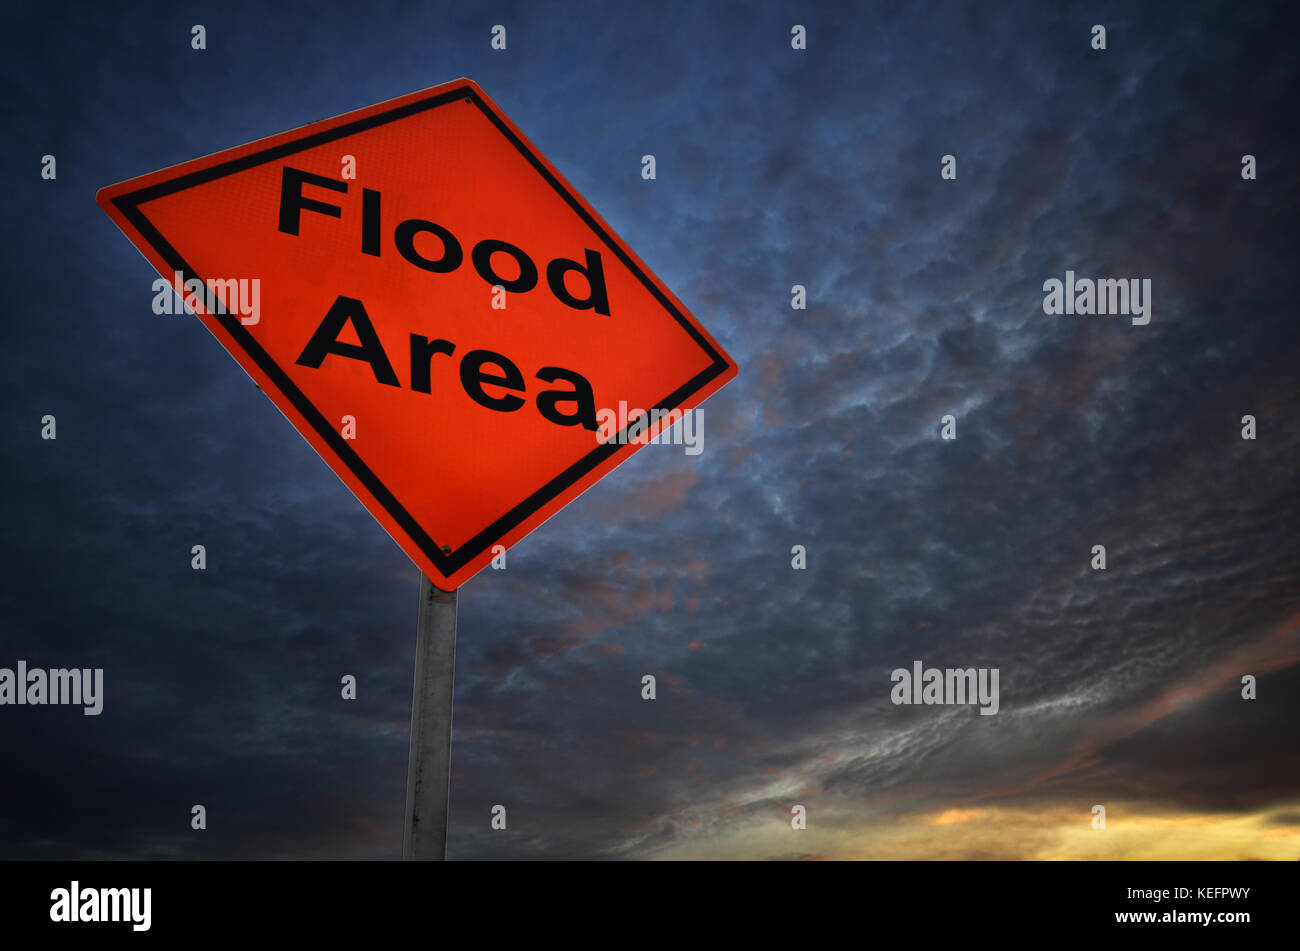 Flood Area warning road sign with storm background Stock Photo